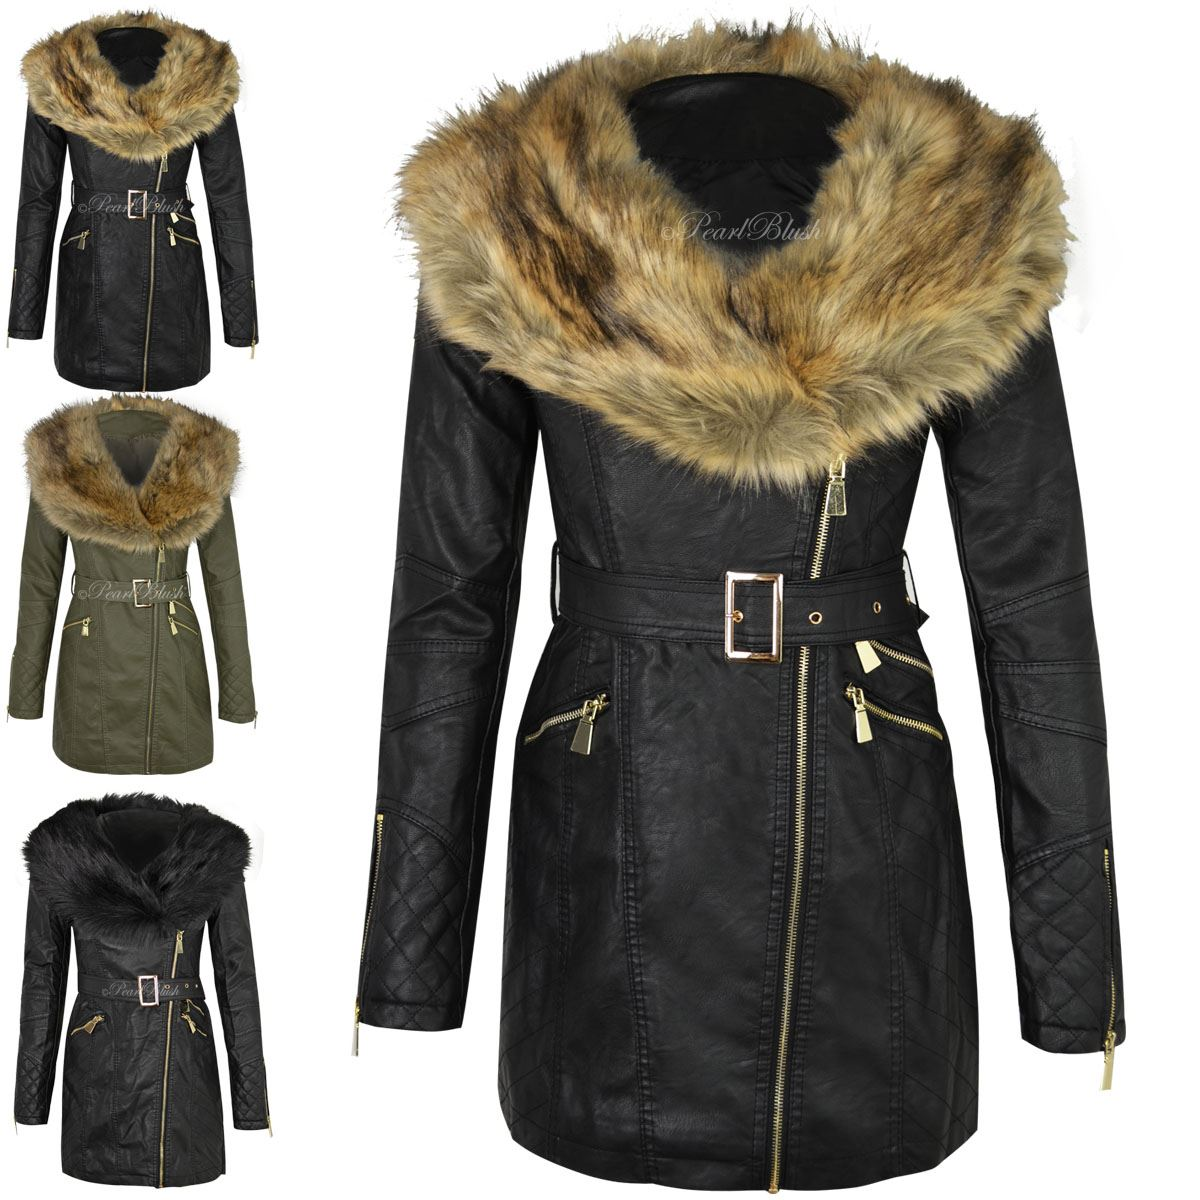 Ladies Parka Coats - JacketIn